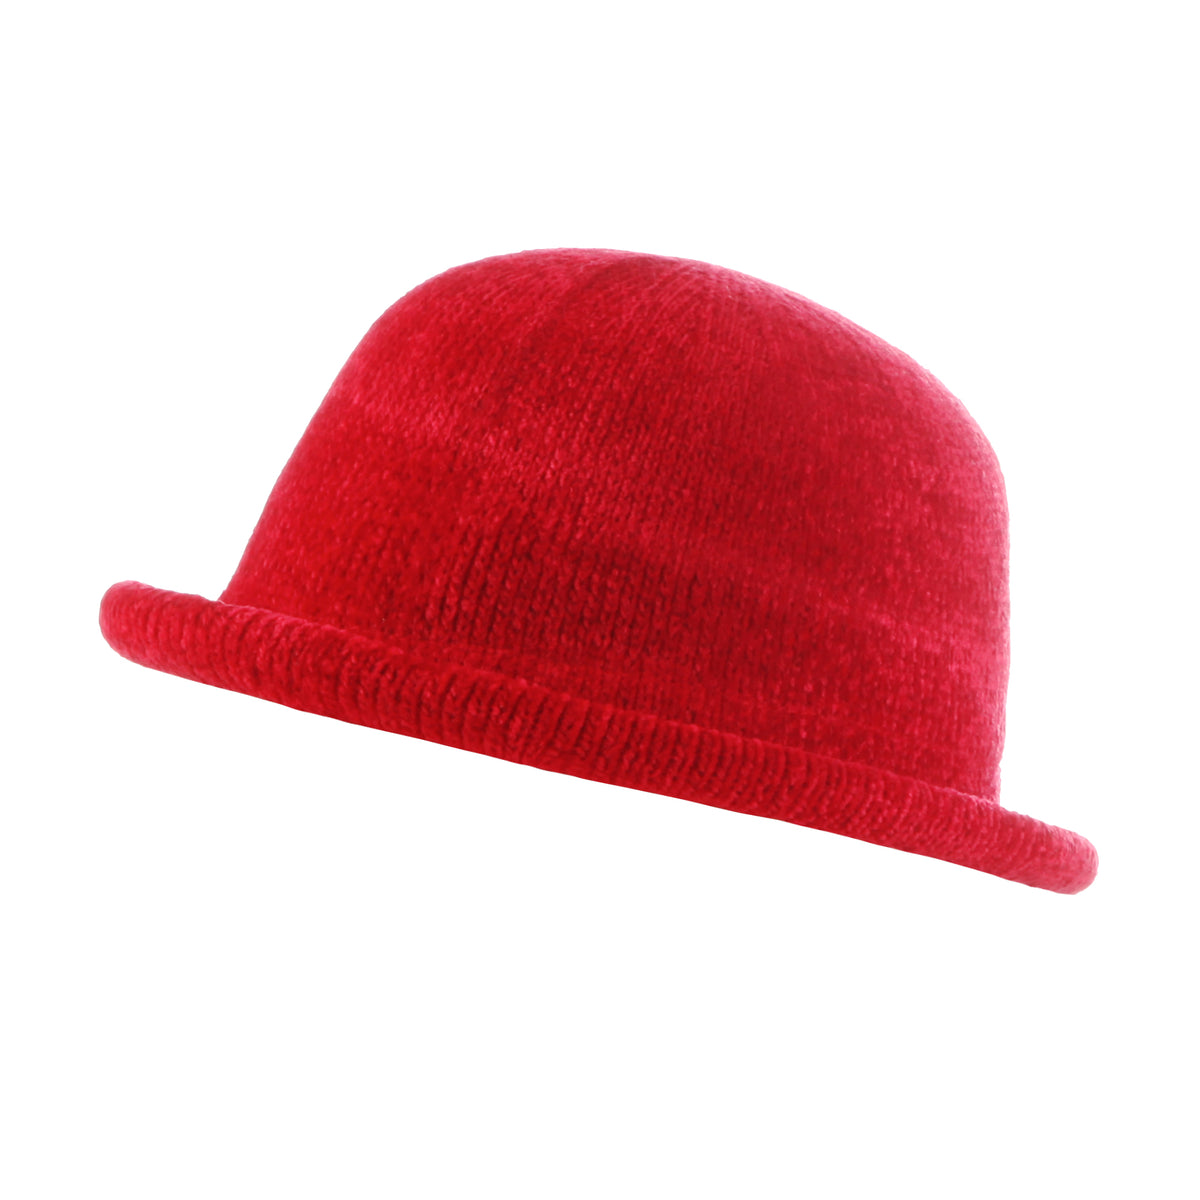 Women's Chenille Hat with Rolled Edge